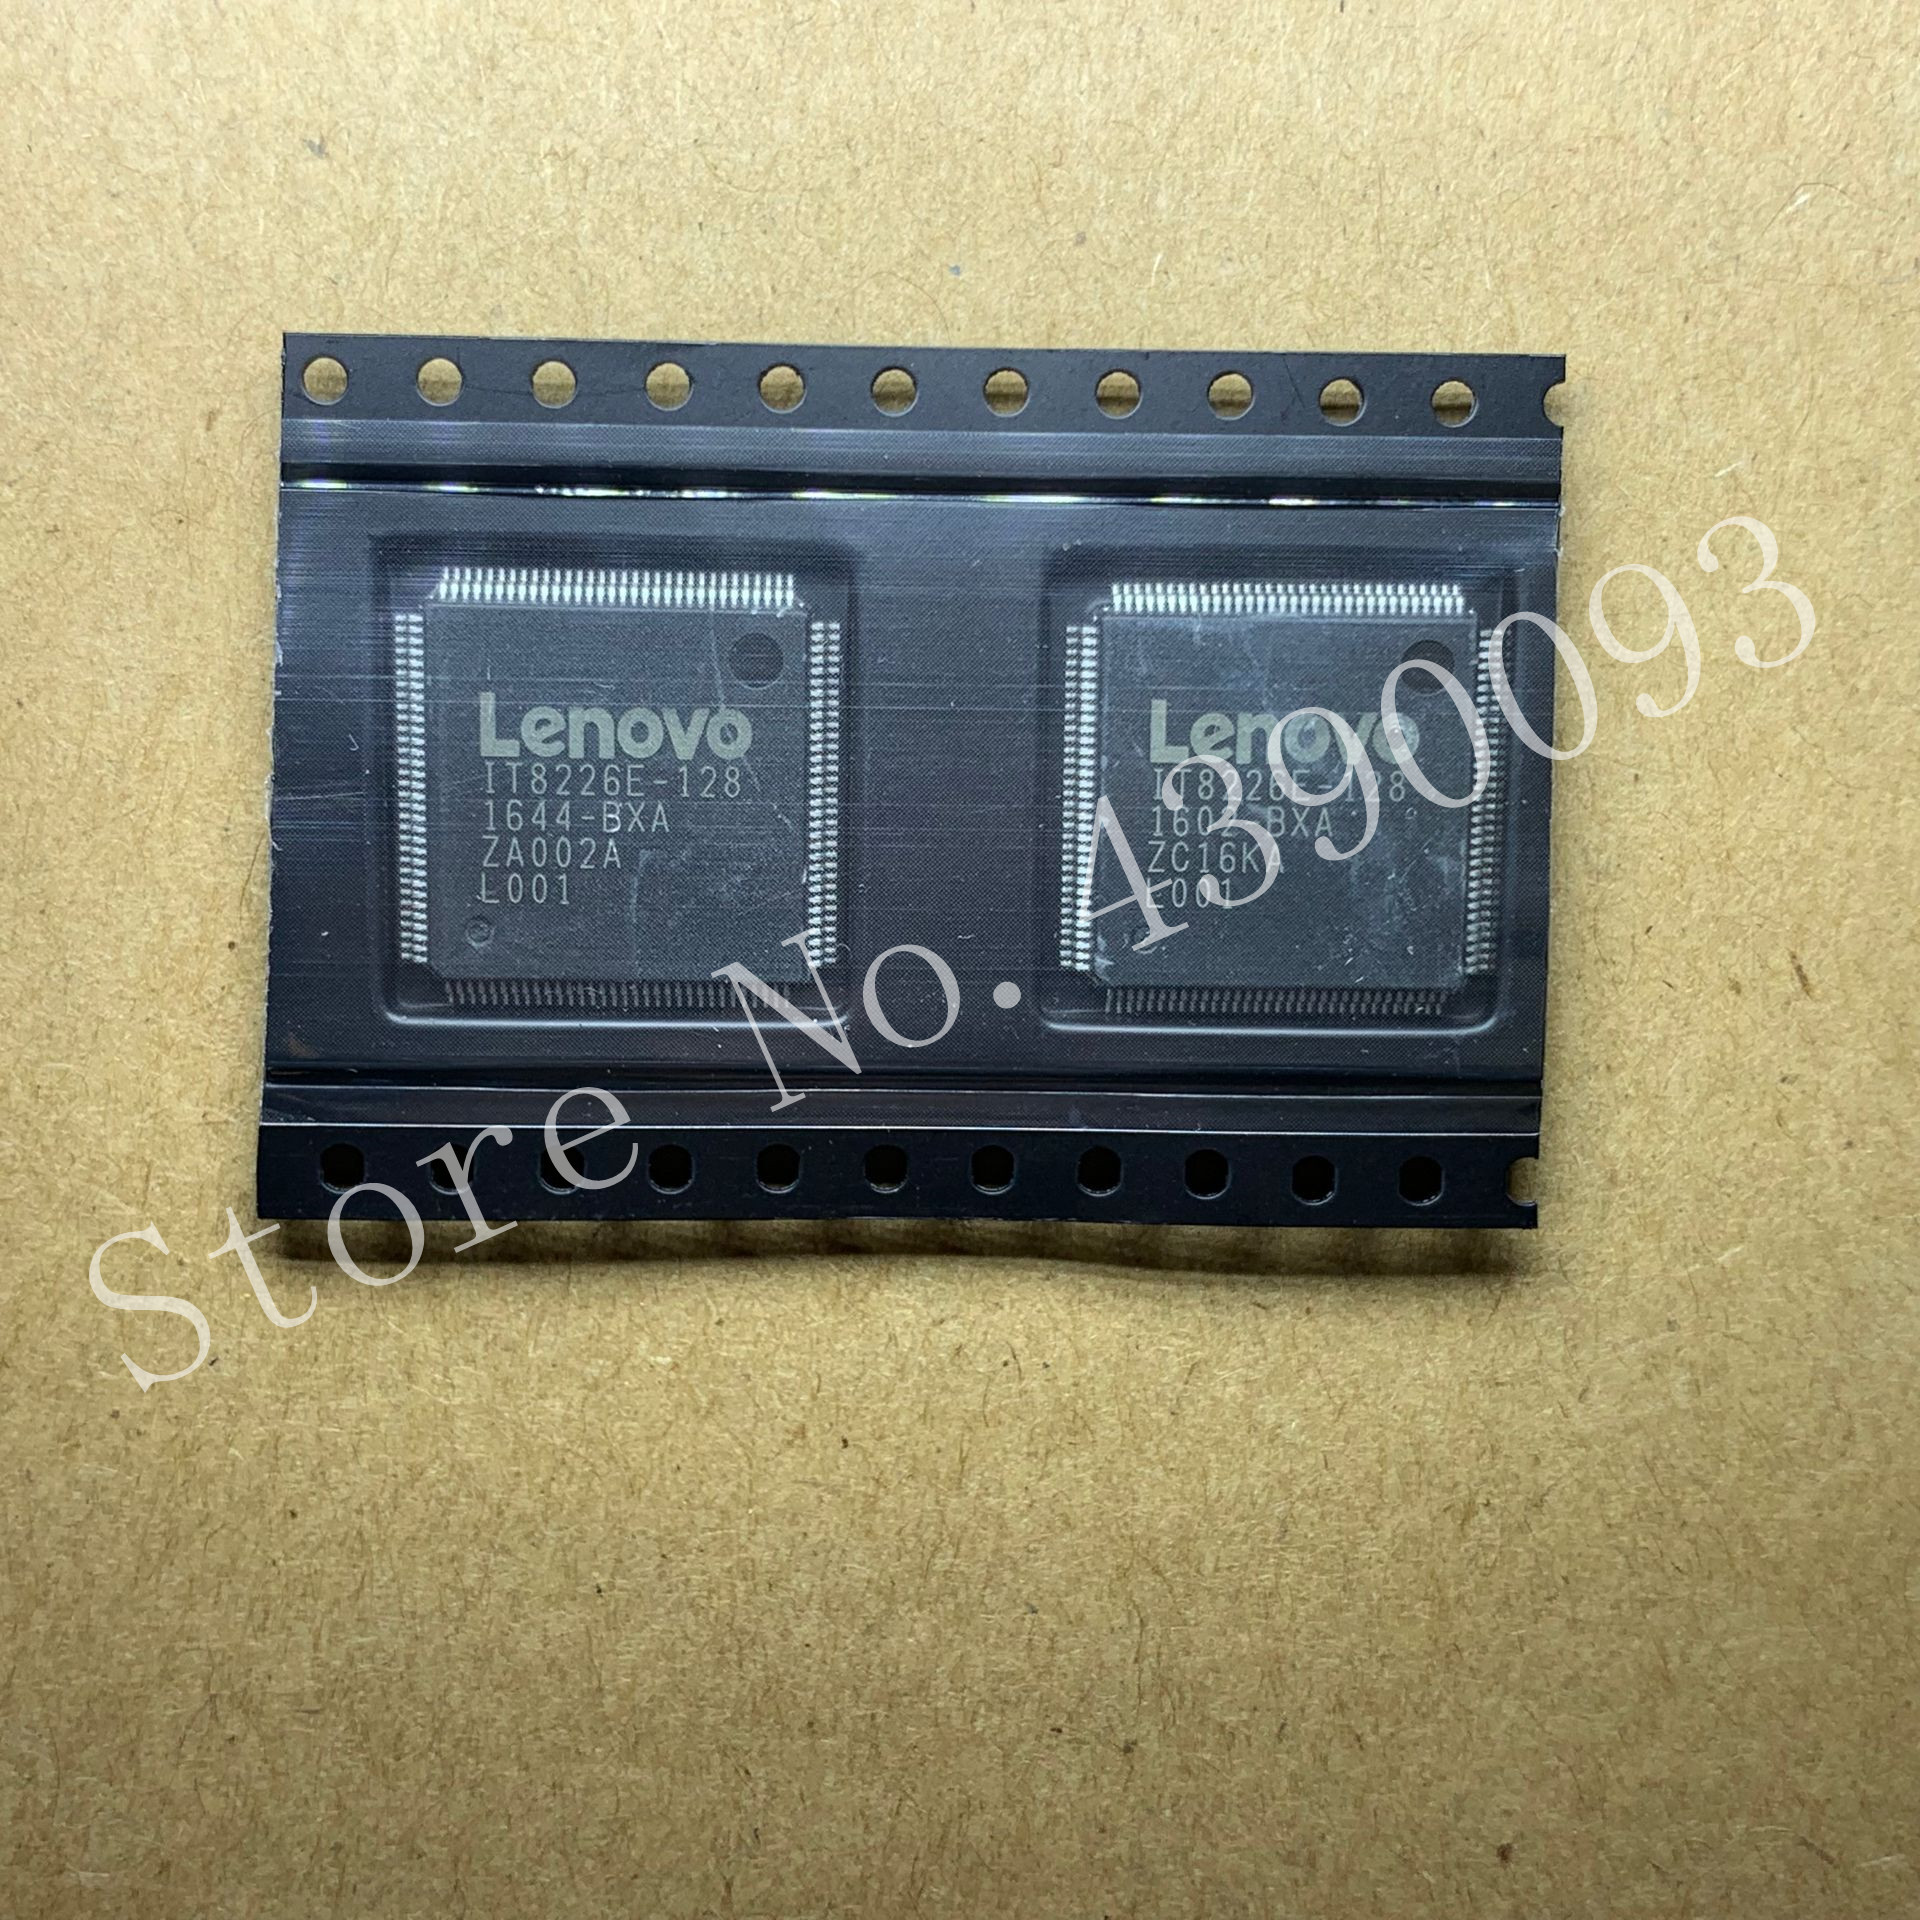 2pcs/lot IT8226E 128 BXA-in Switch Caps from Home Improvement